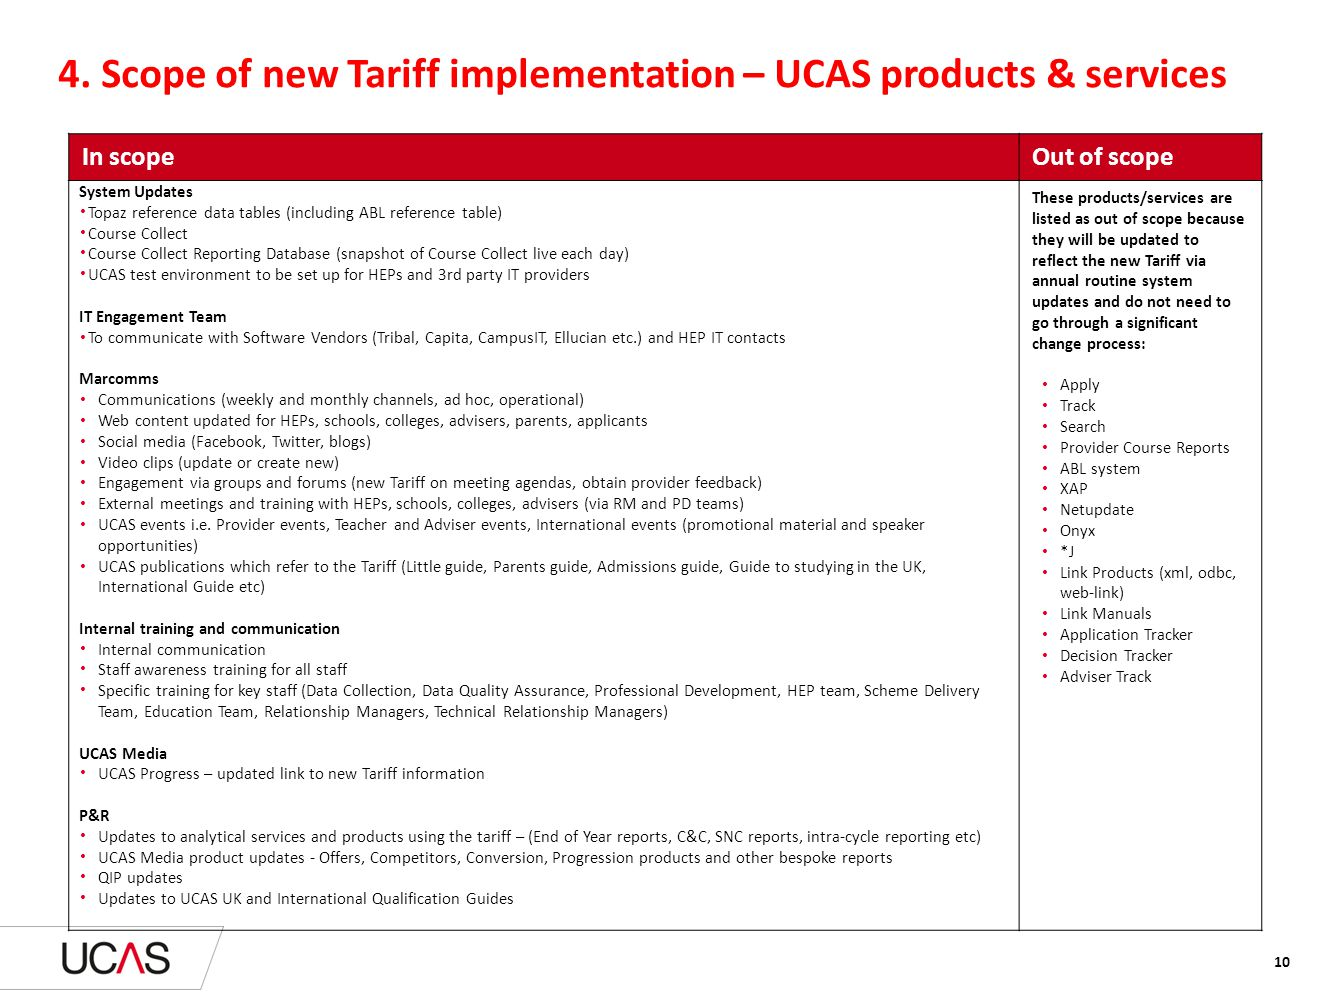 4. Scope of new Tariff implementation – UCAS products & services